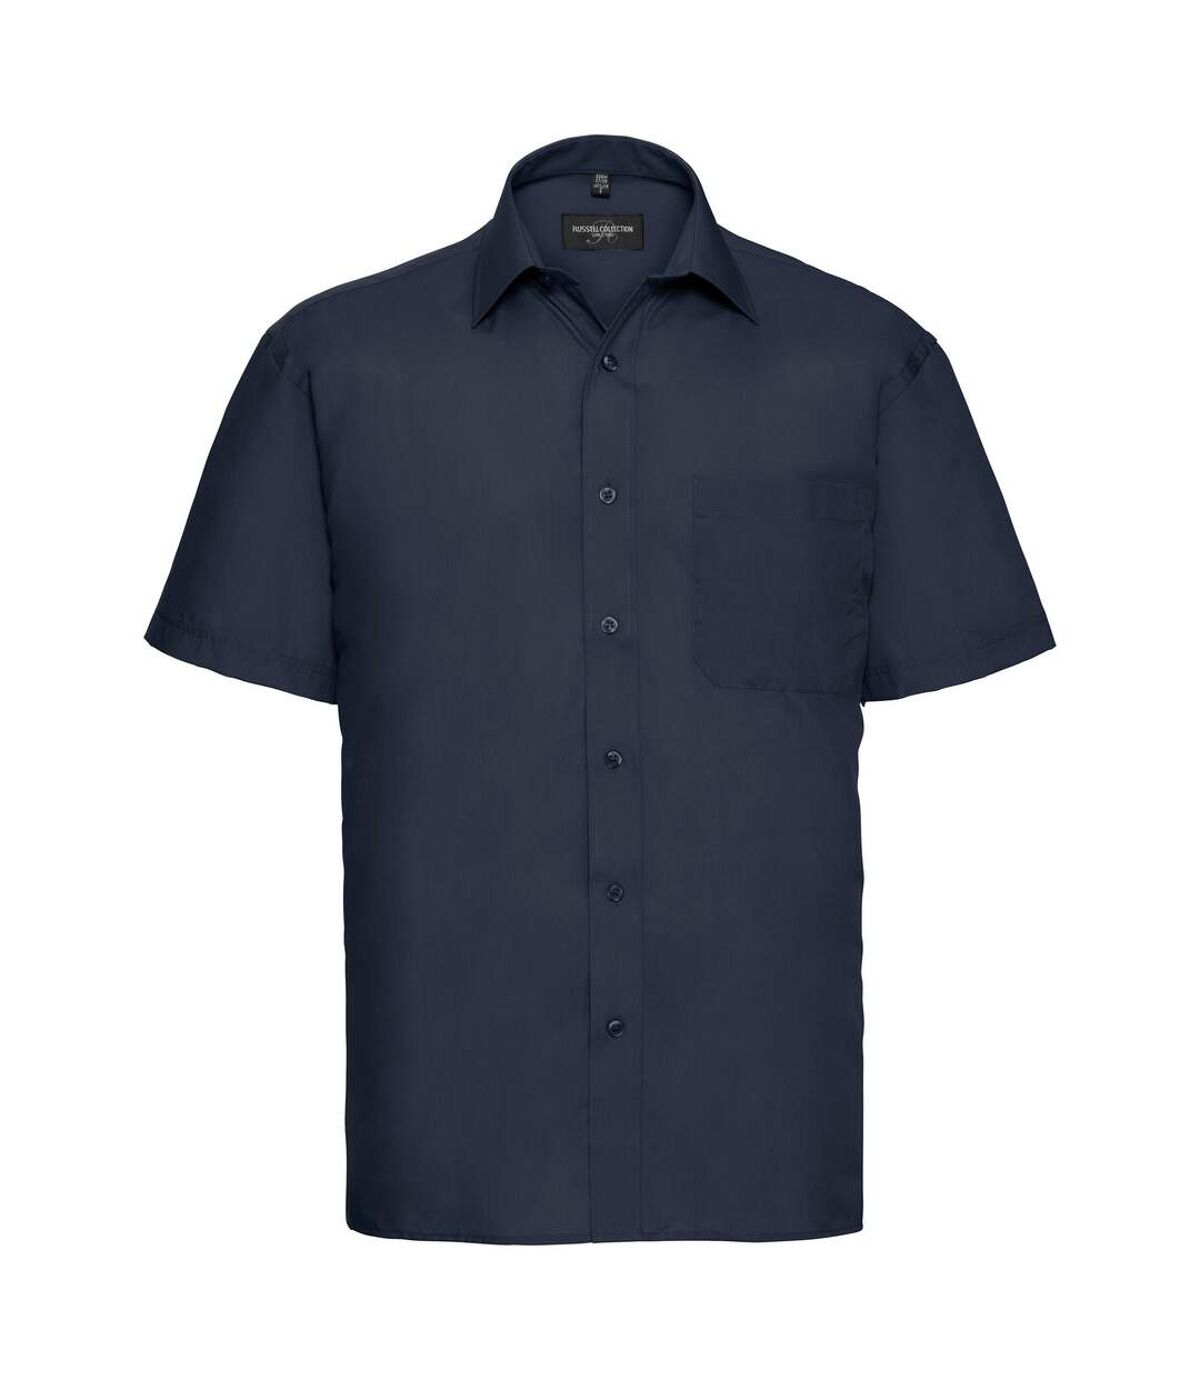 Russell Collection Mens Short Sleeve Poly-Cotton Easy Care Poplin Shirt (French Navy) - UTBC1029